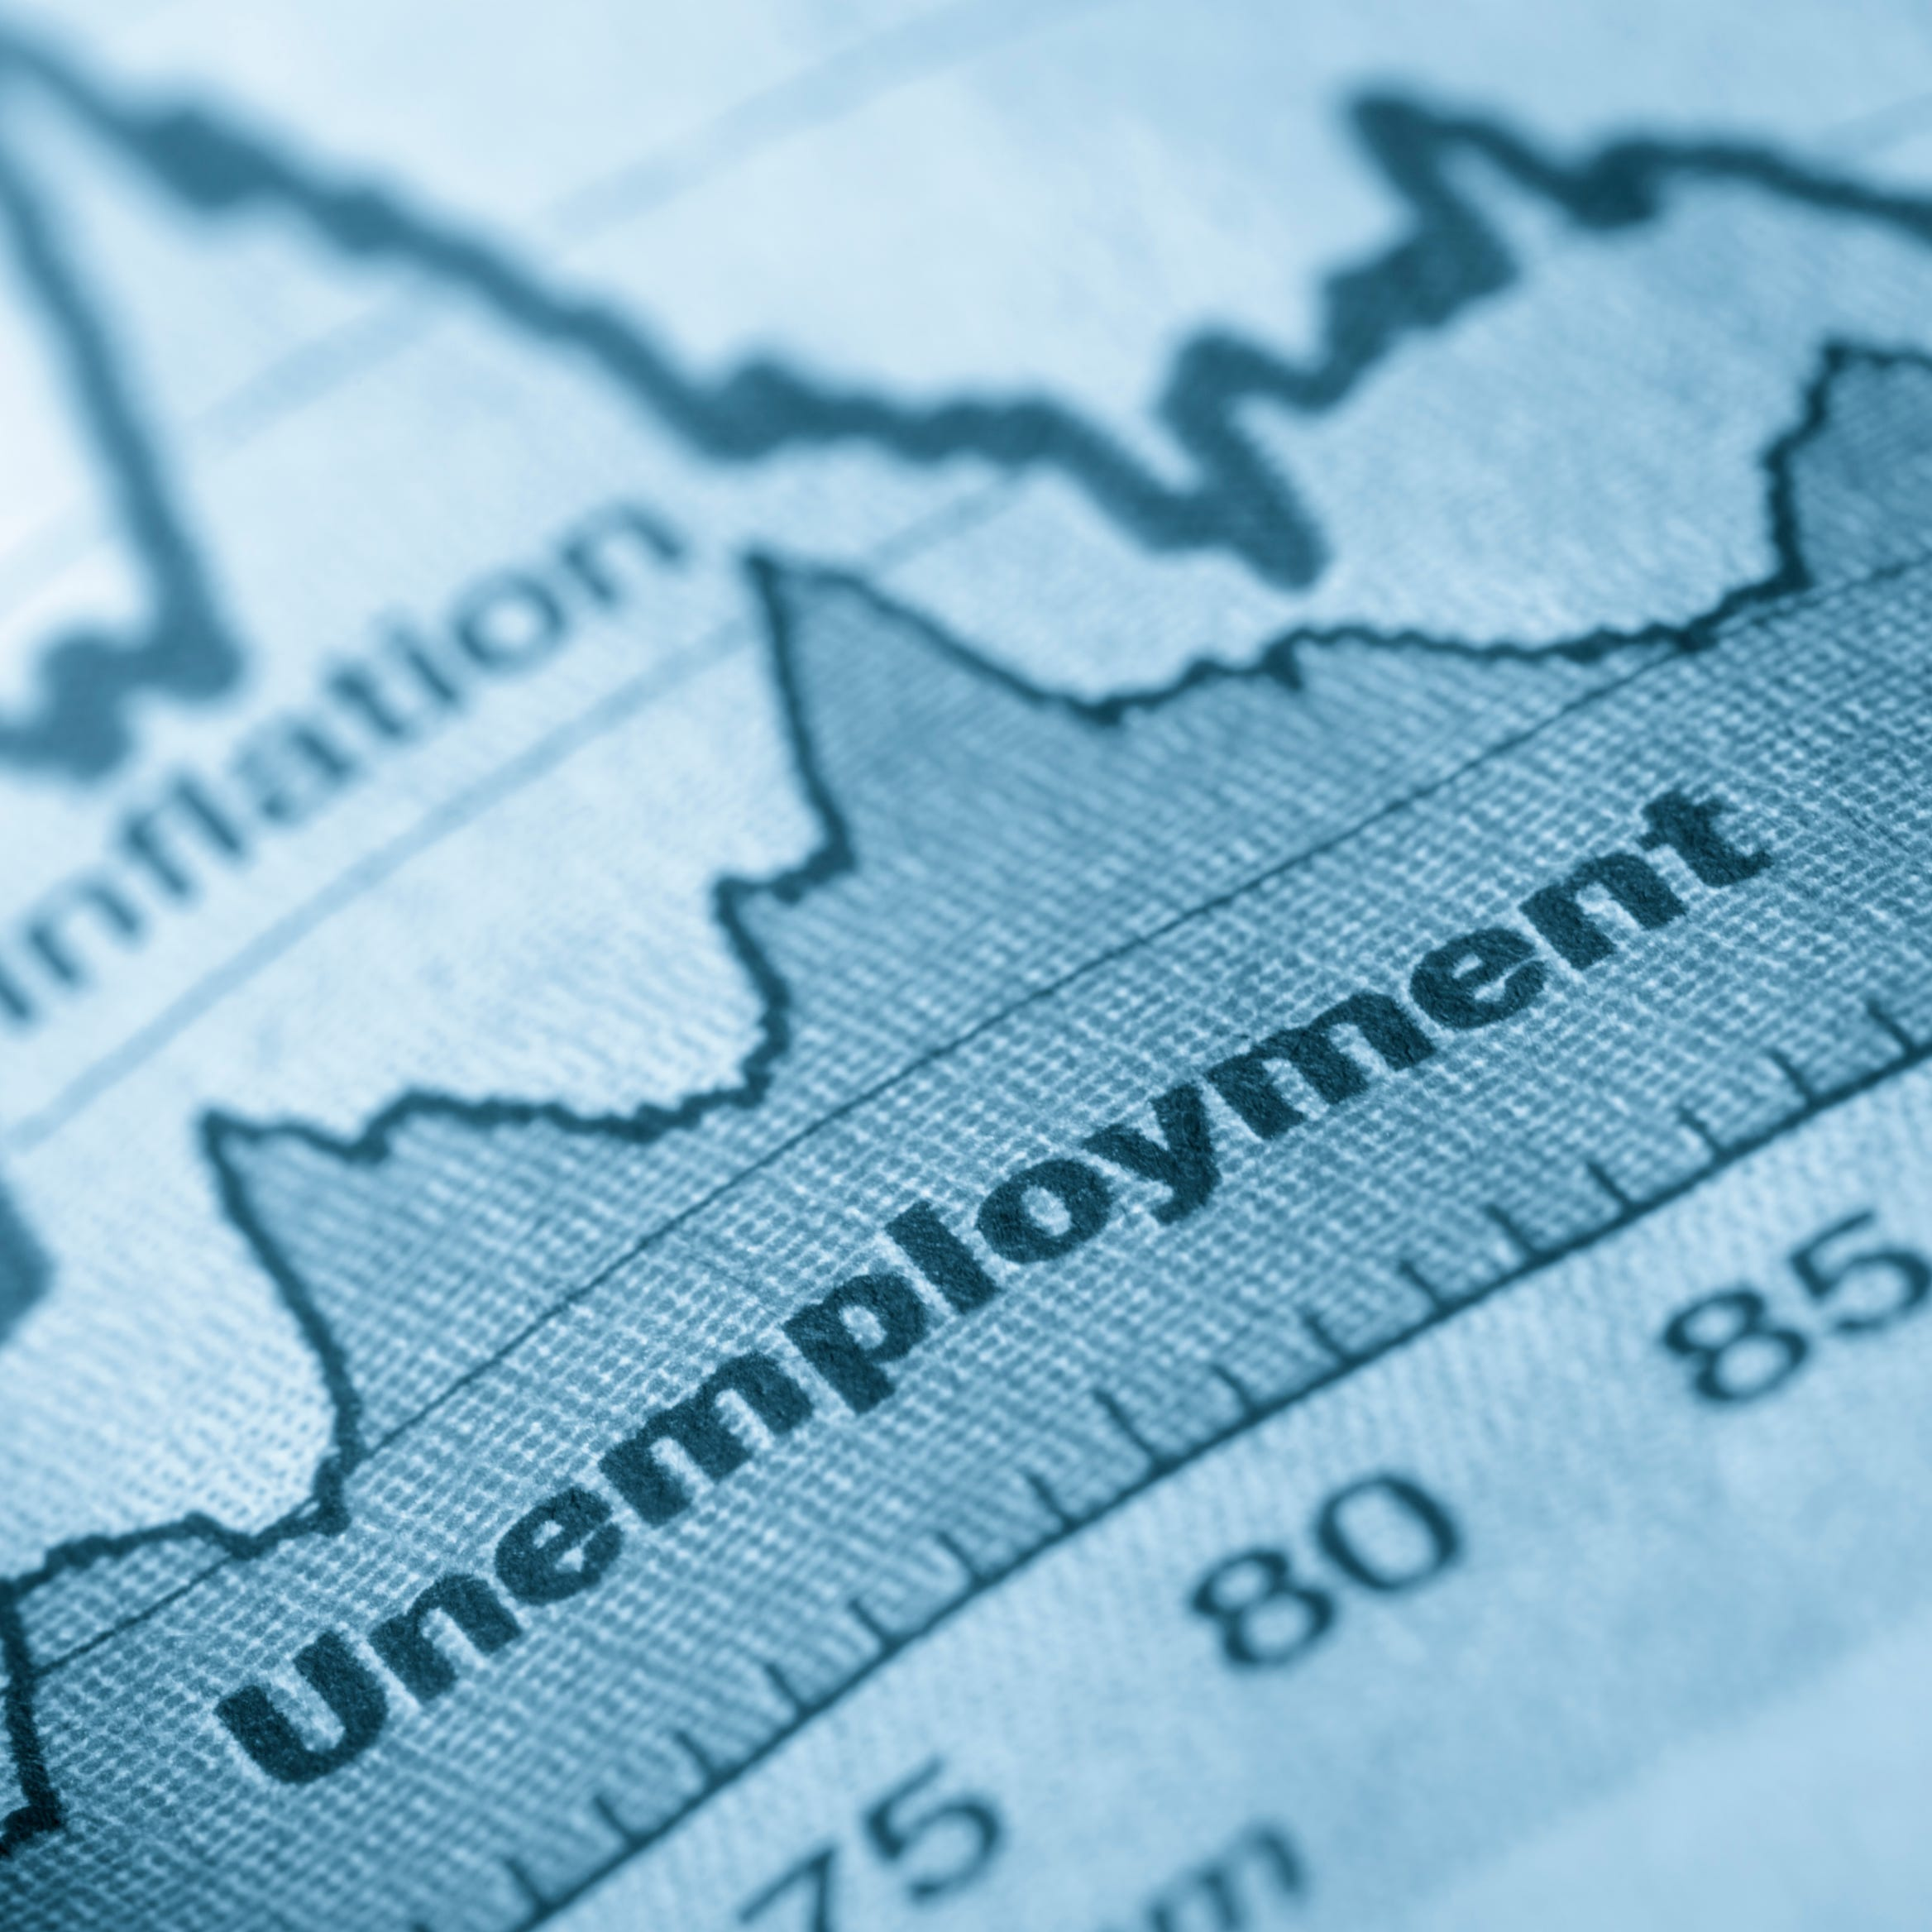 New Mexico's unemployment rate higher than national average, lower in oil and gas counties